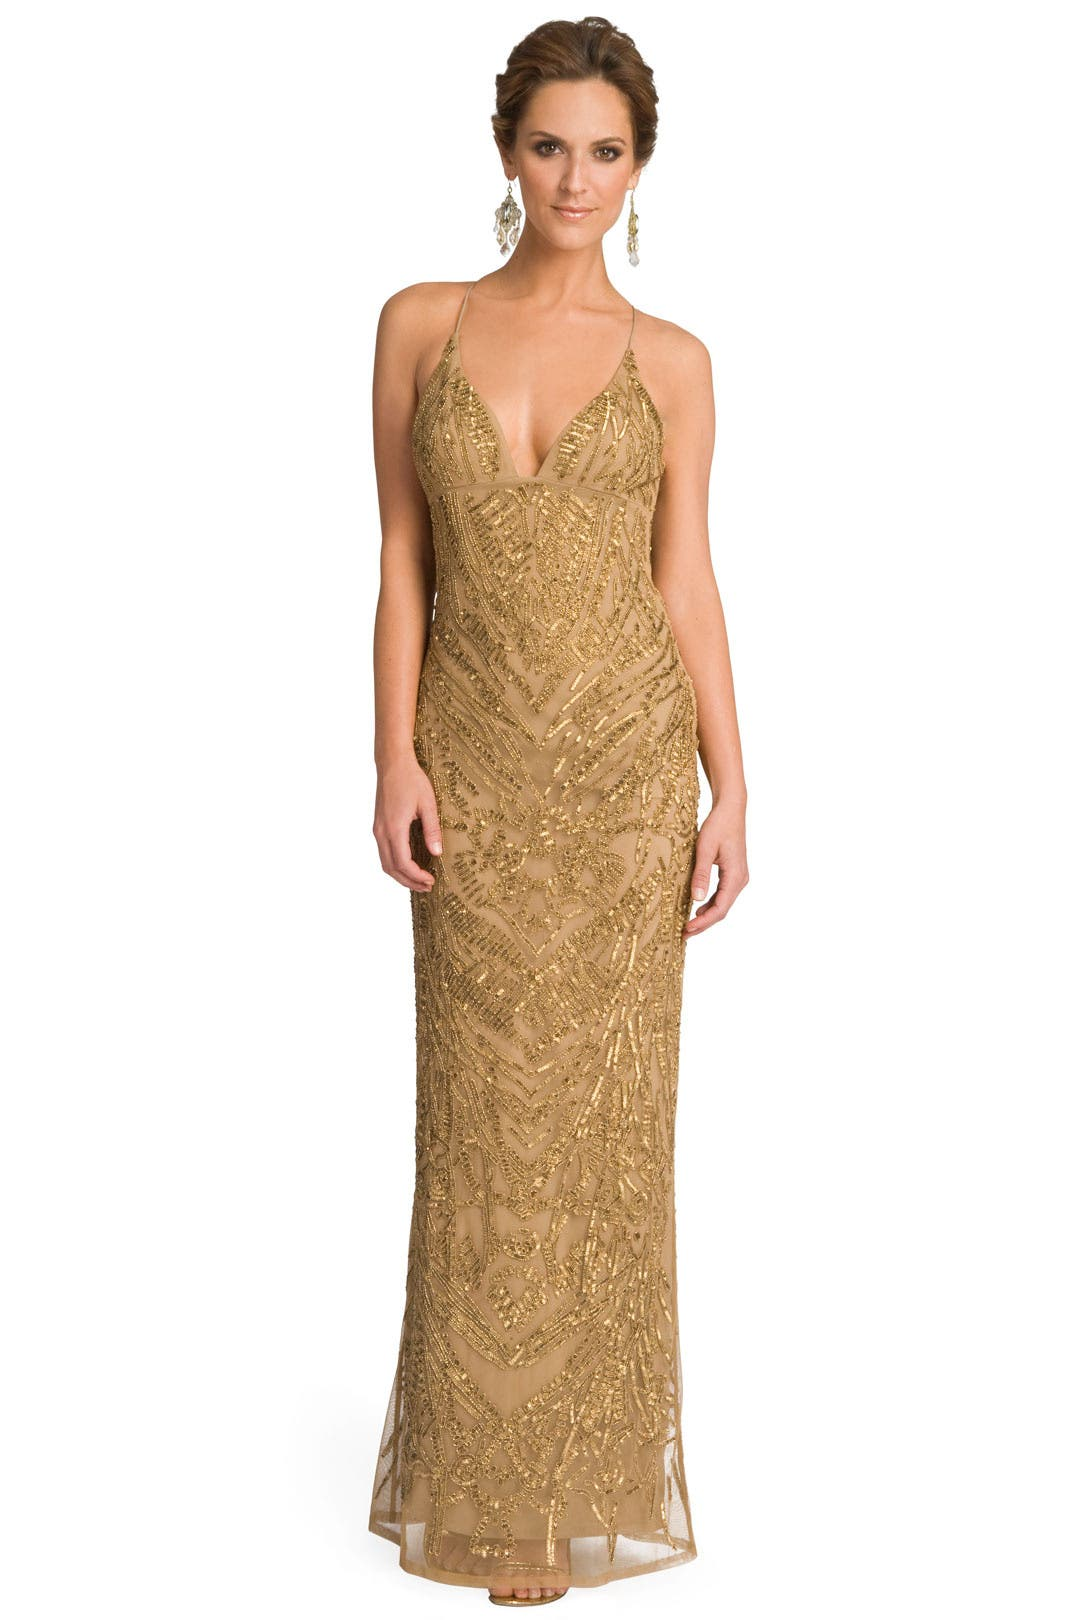 Drop Dead Gold Gorgeous Gown by Nicole Miller